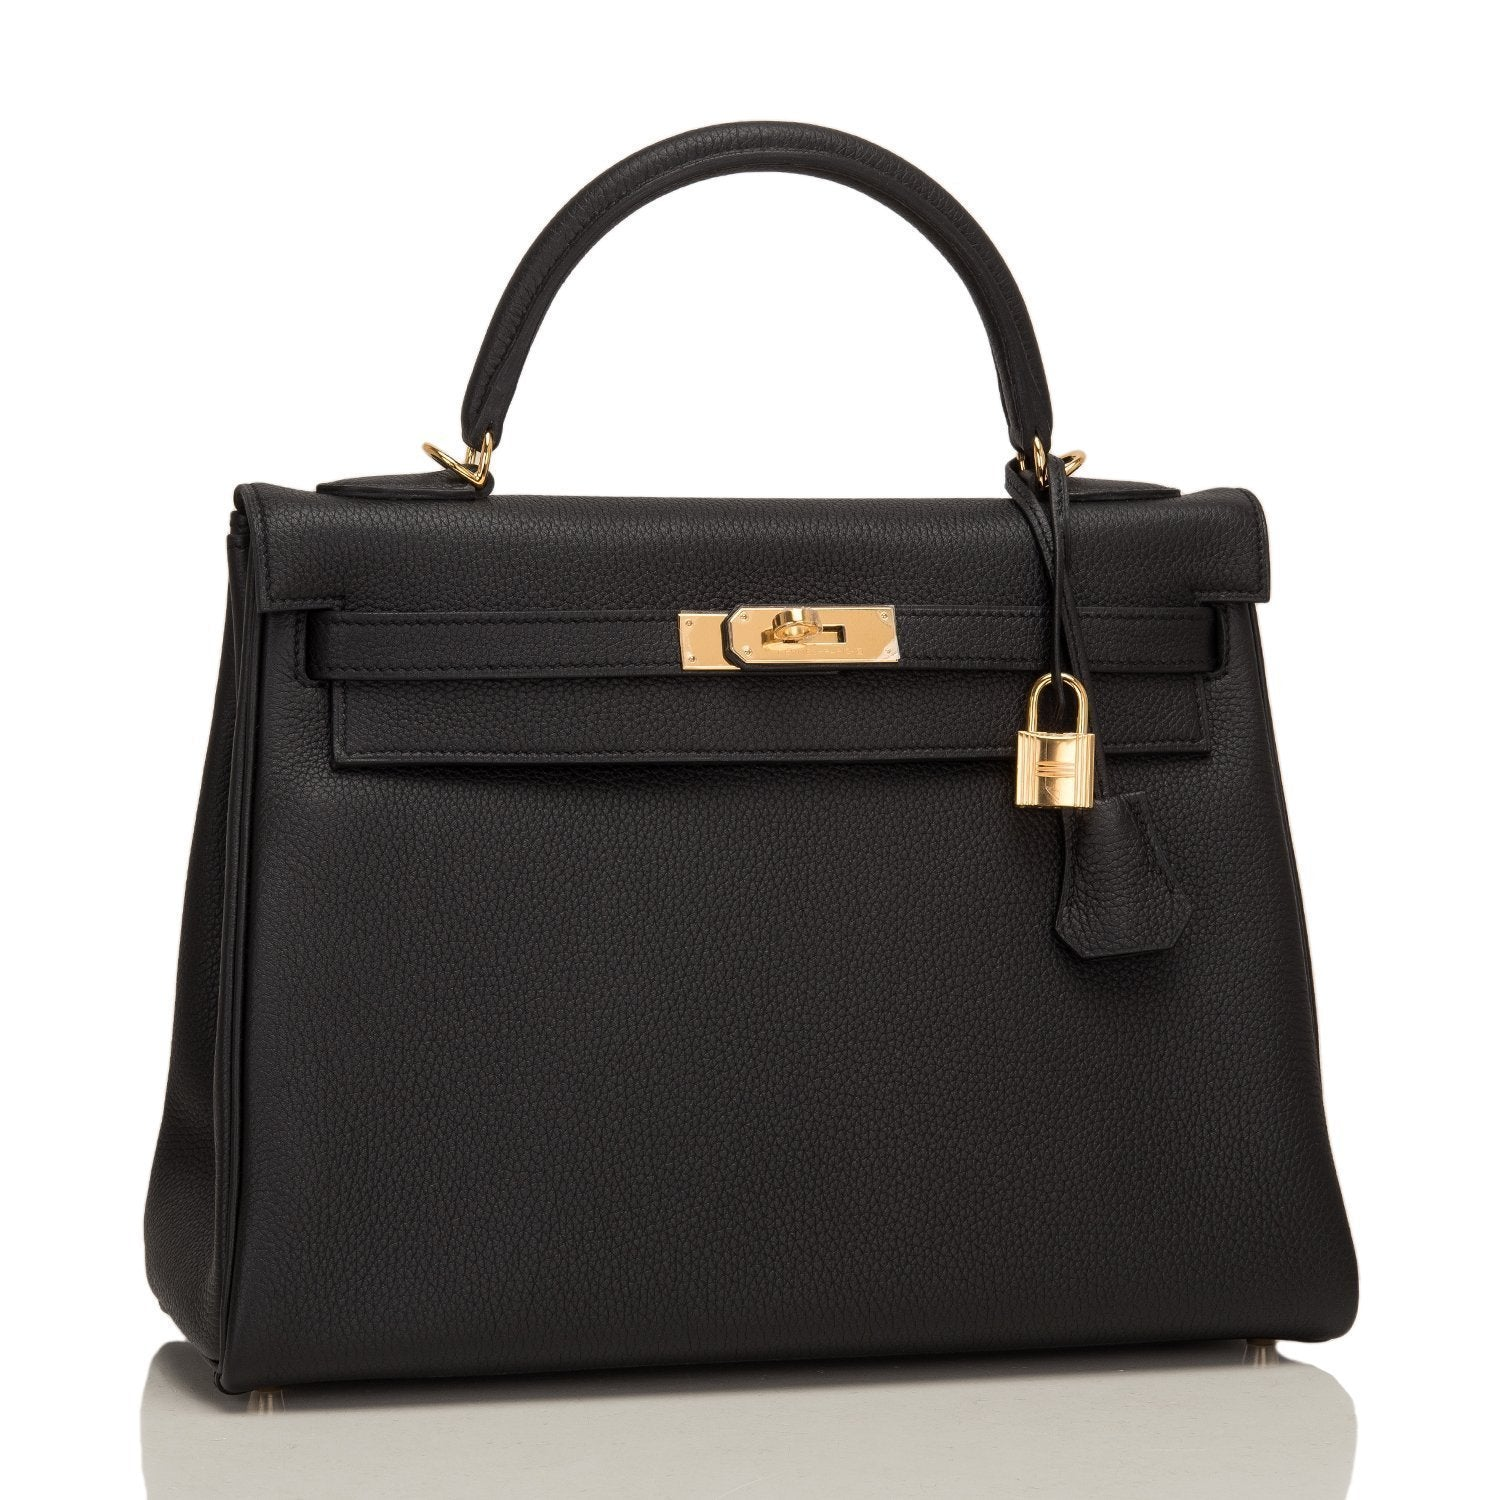 Hermes Black Togo Kelly 32Cm Gold Hardware Handbags